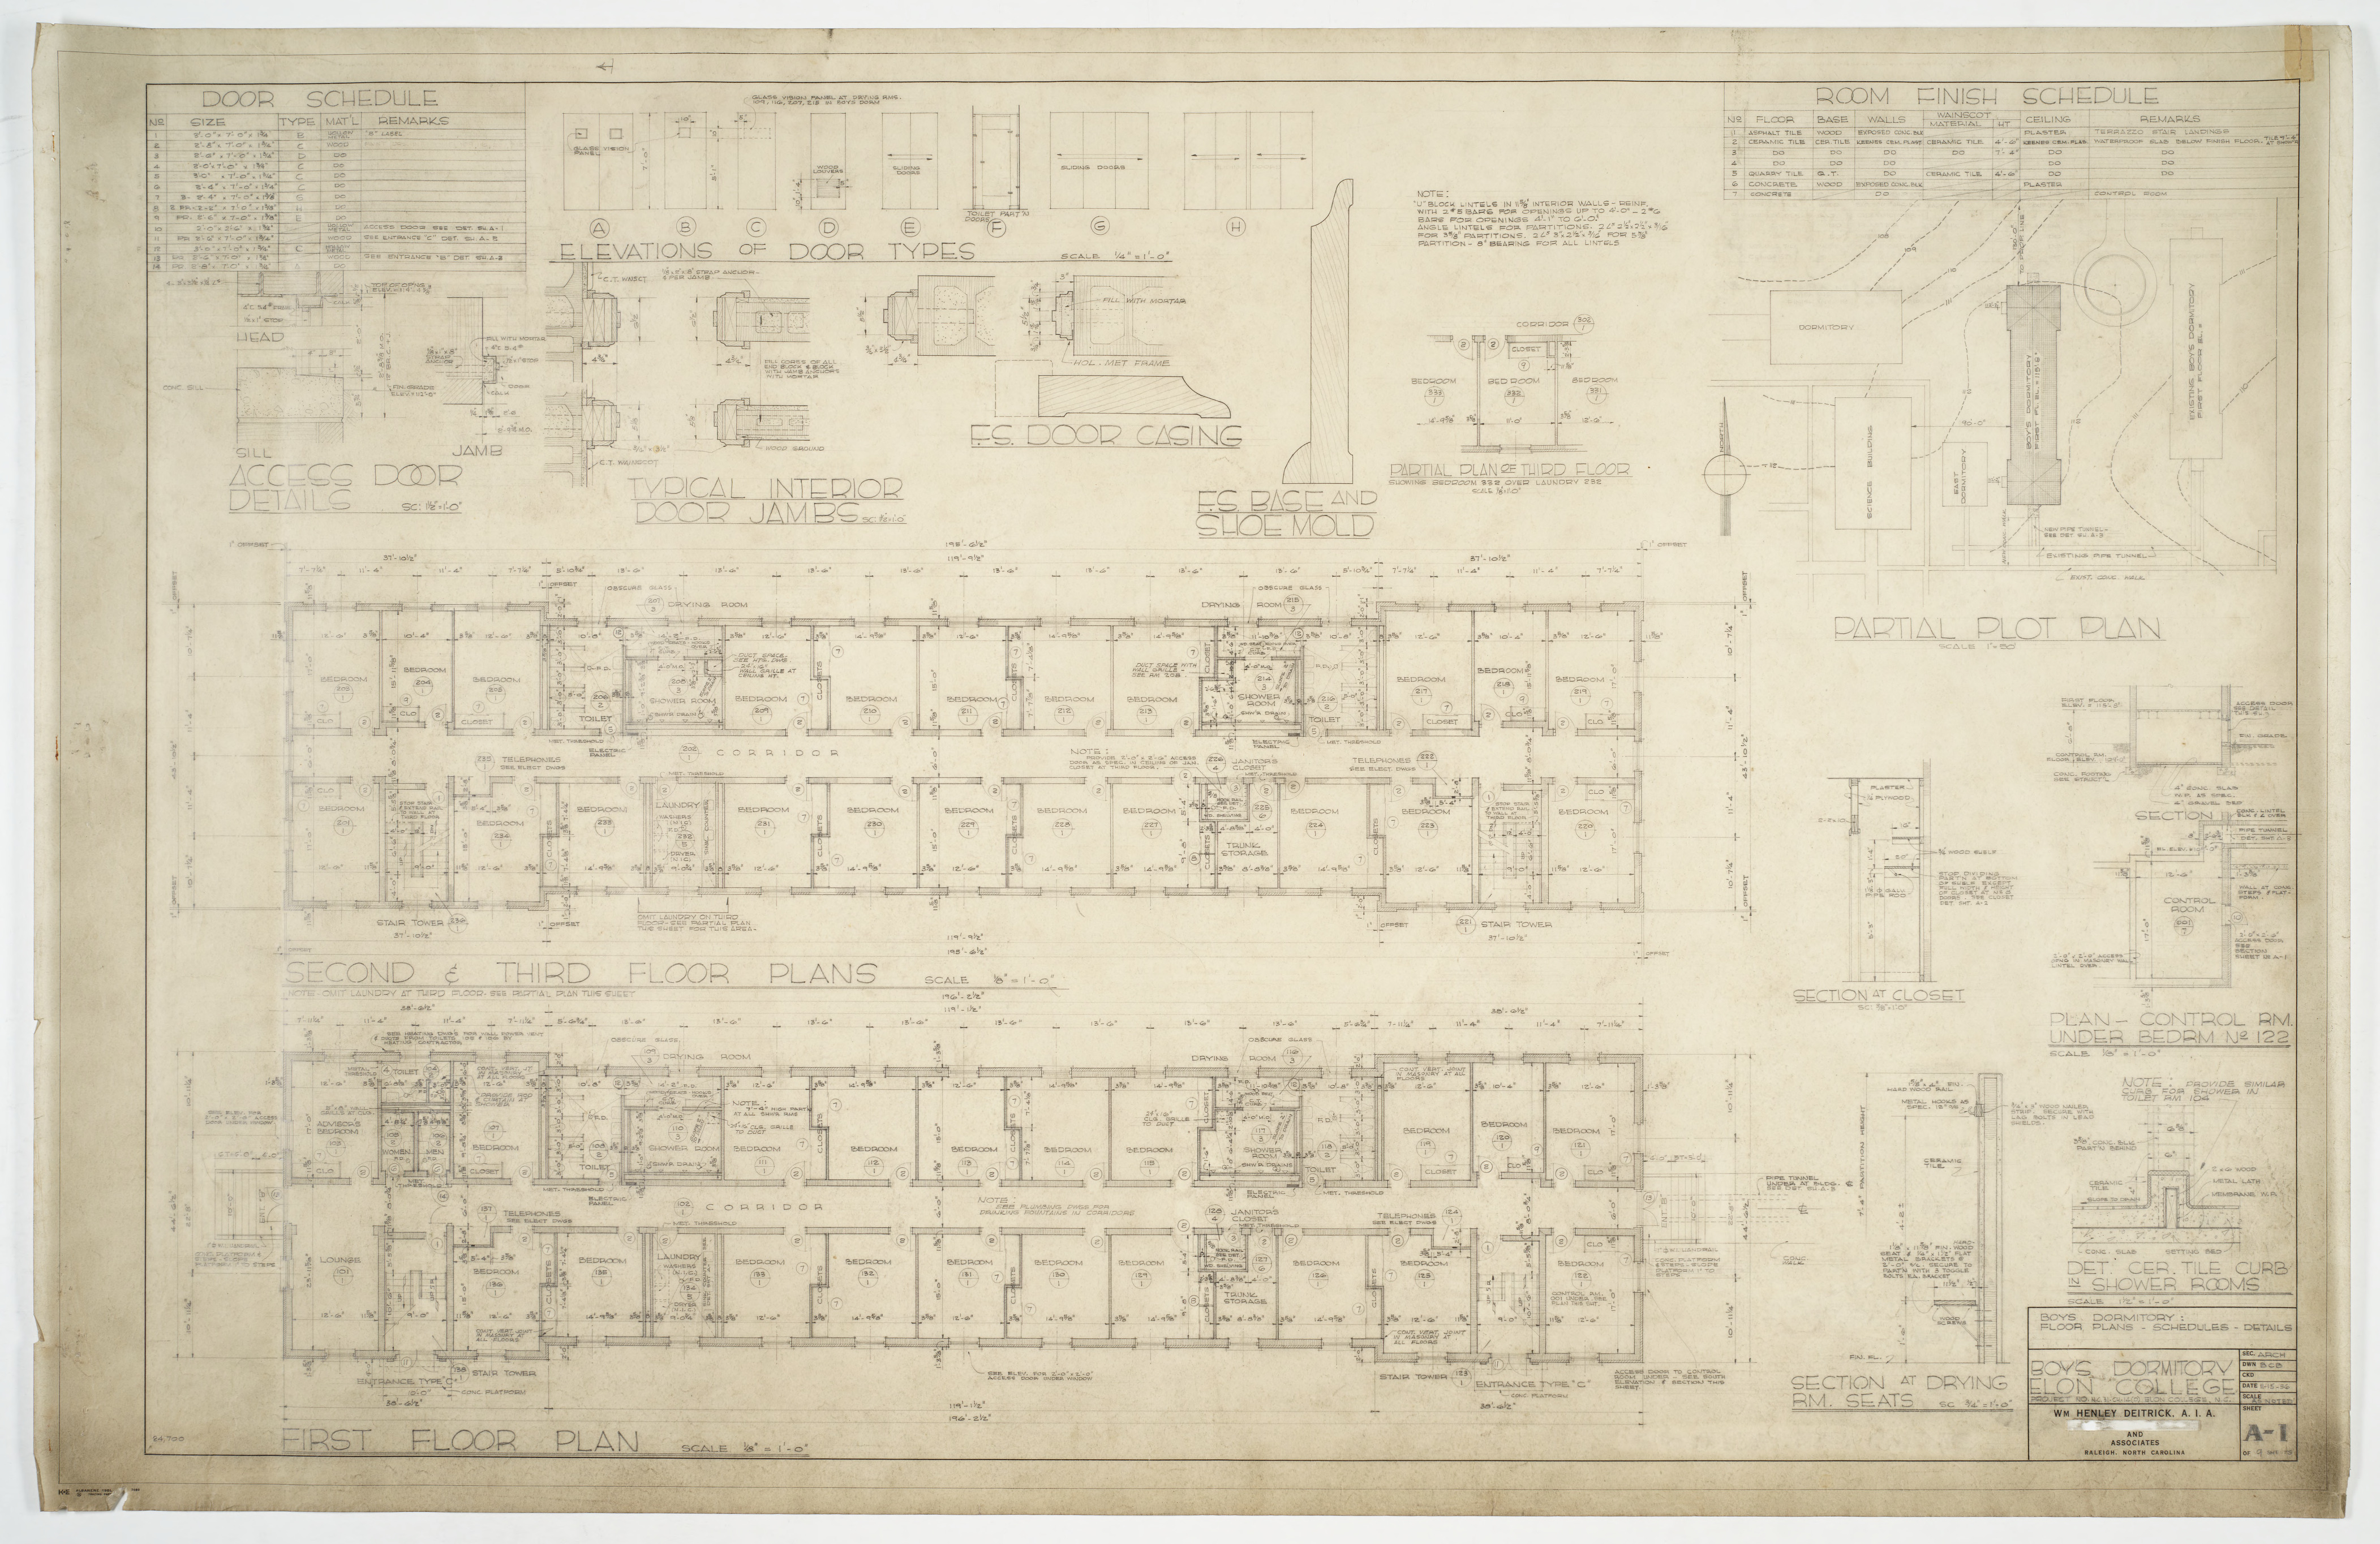 floor plans site plans and finishing details elon